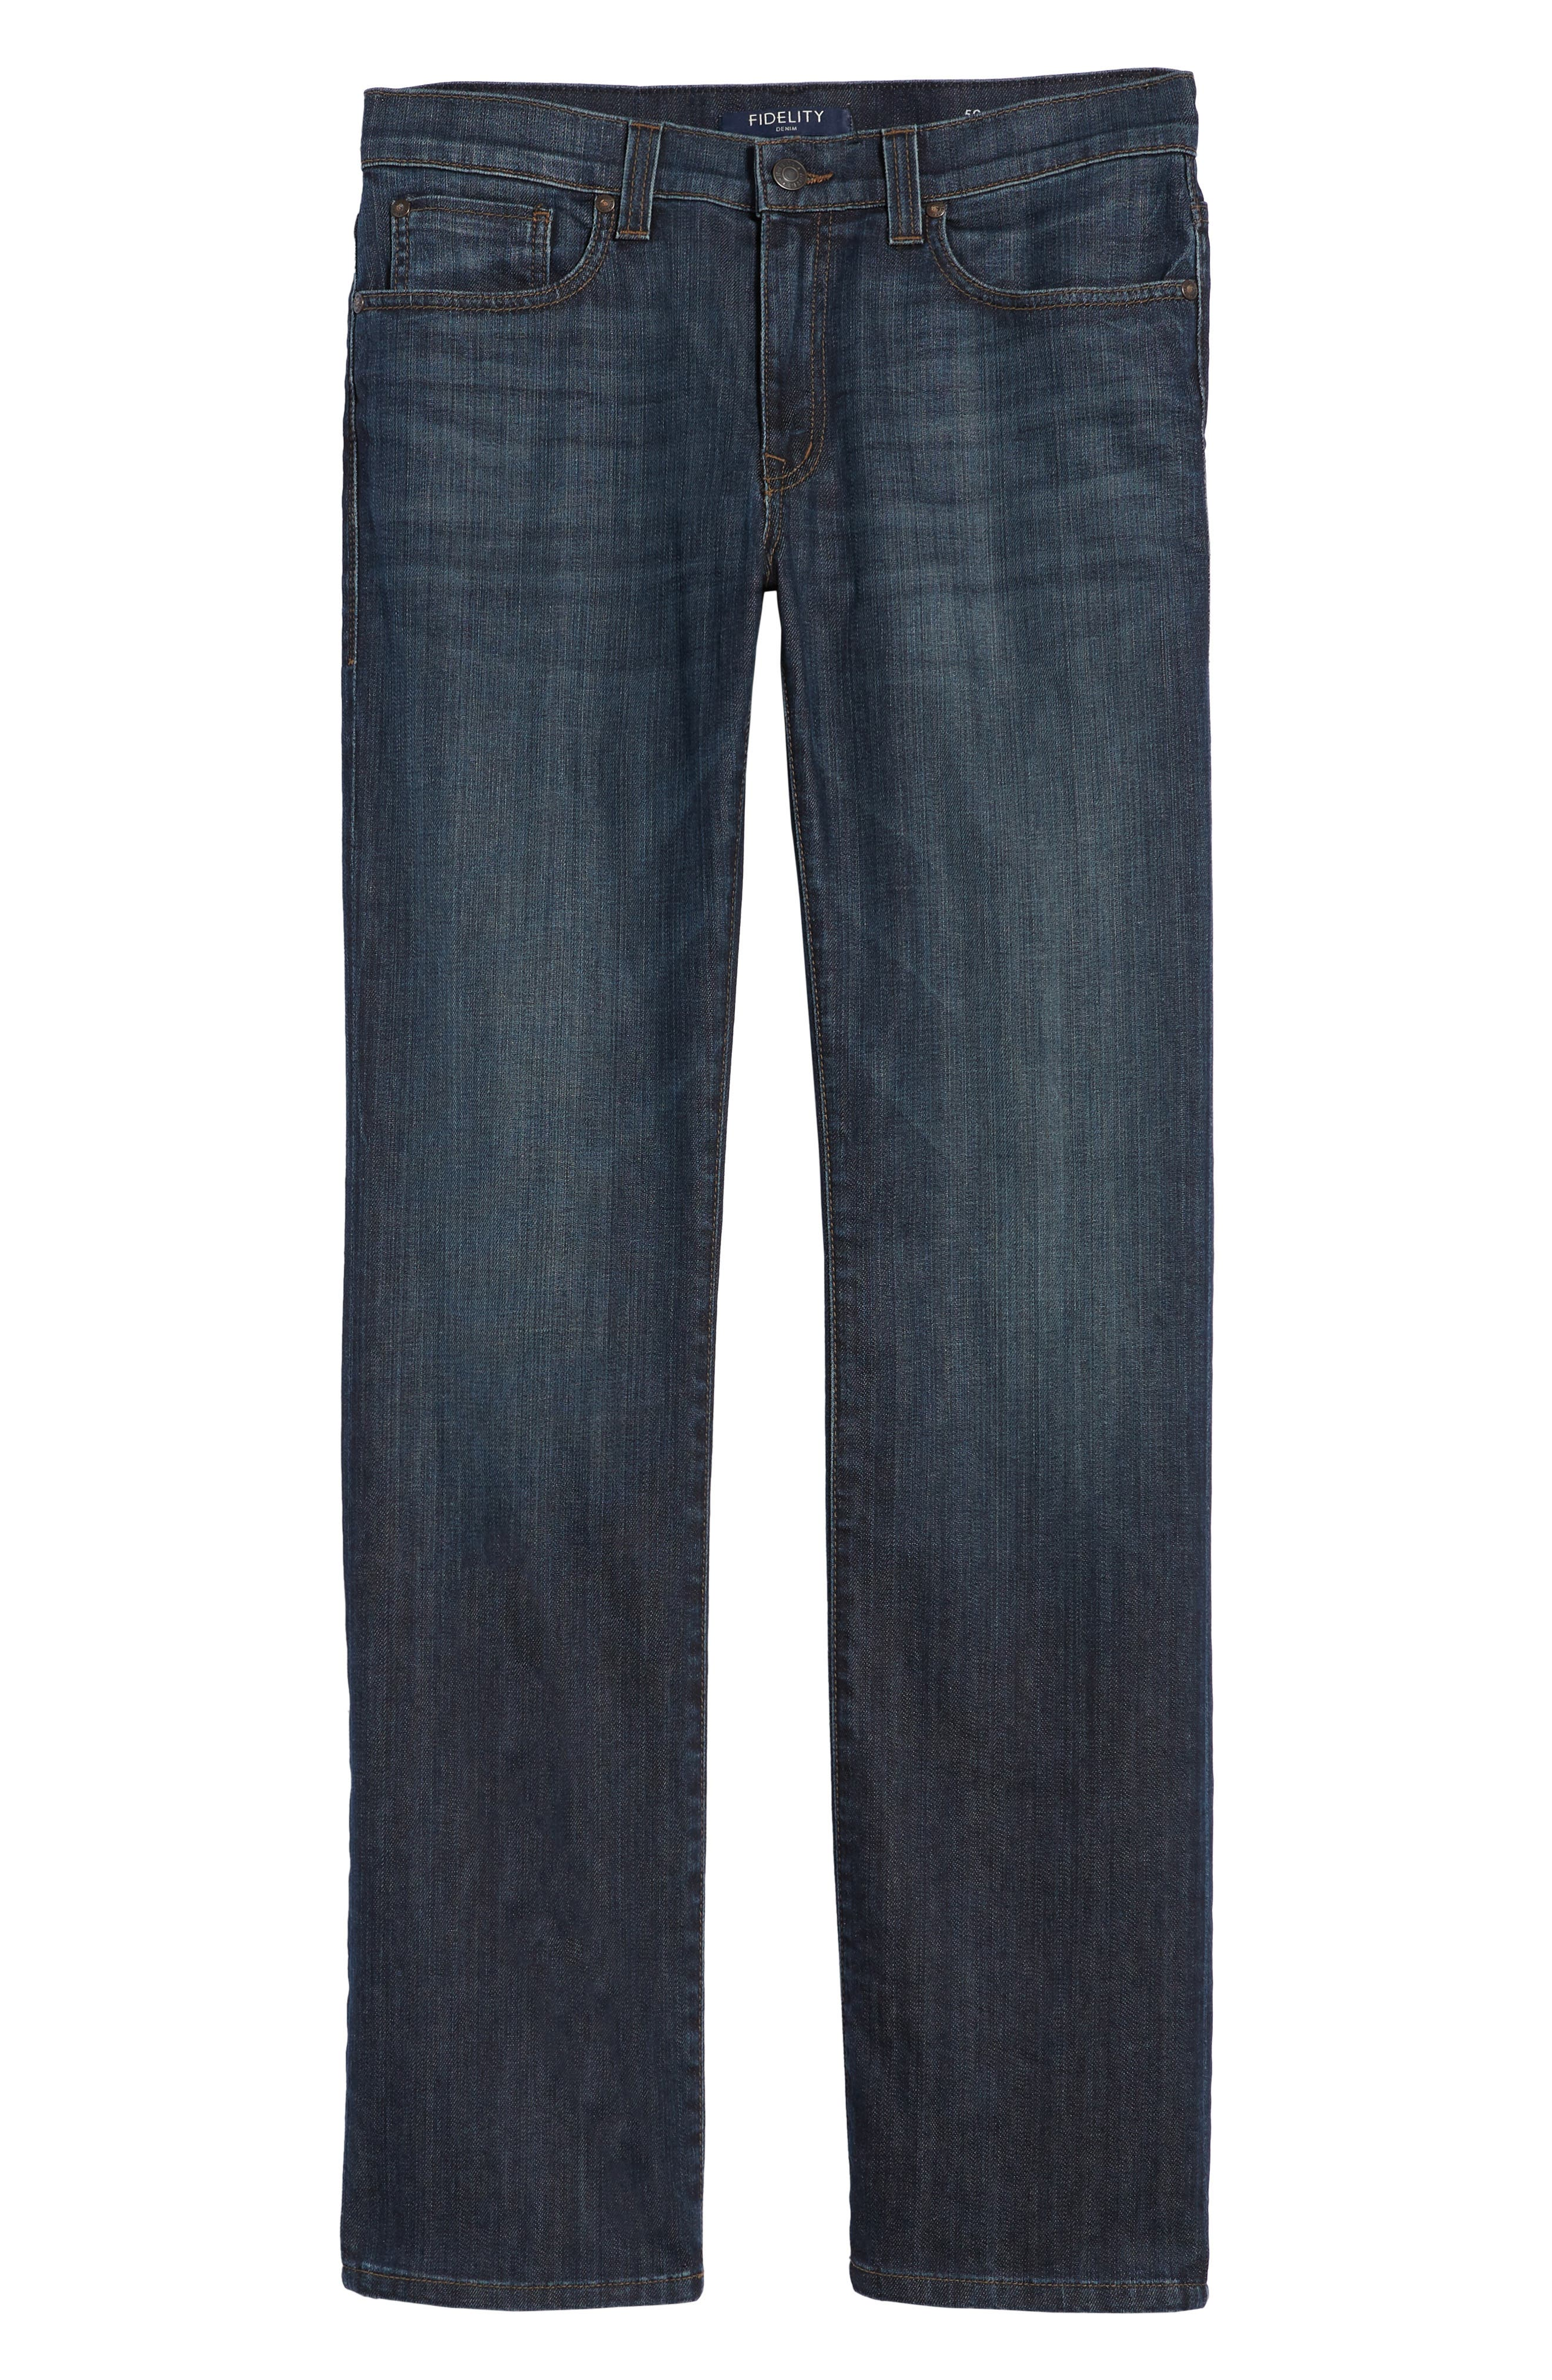 50-11 Relaxed Fit Jeans,                             Alternate thumbnail 6, color,                             Winwood Vintage